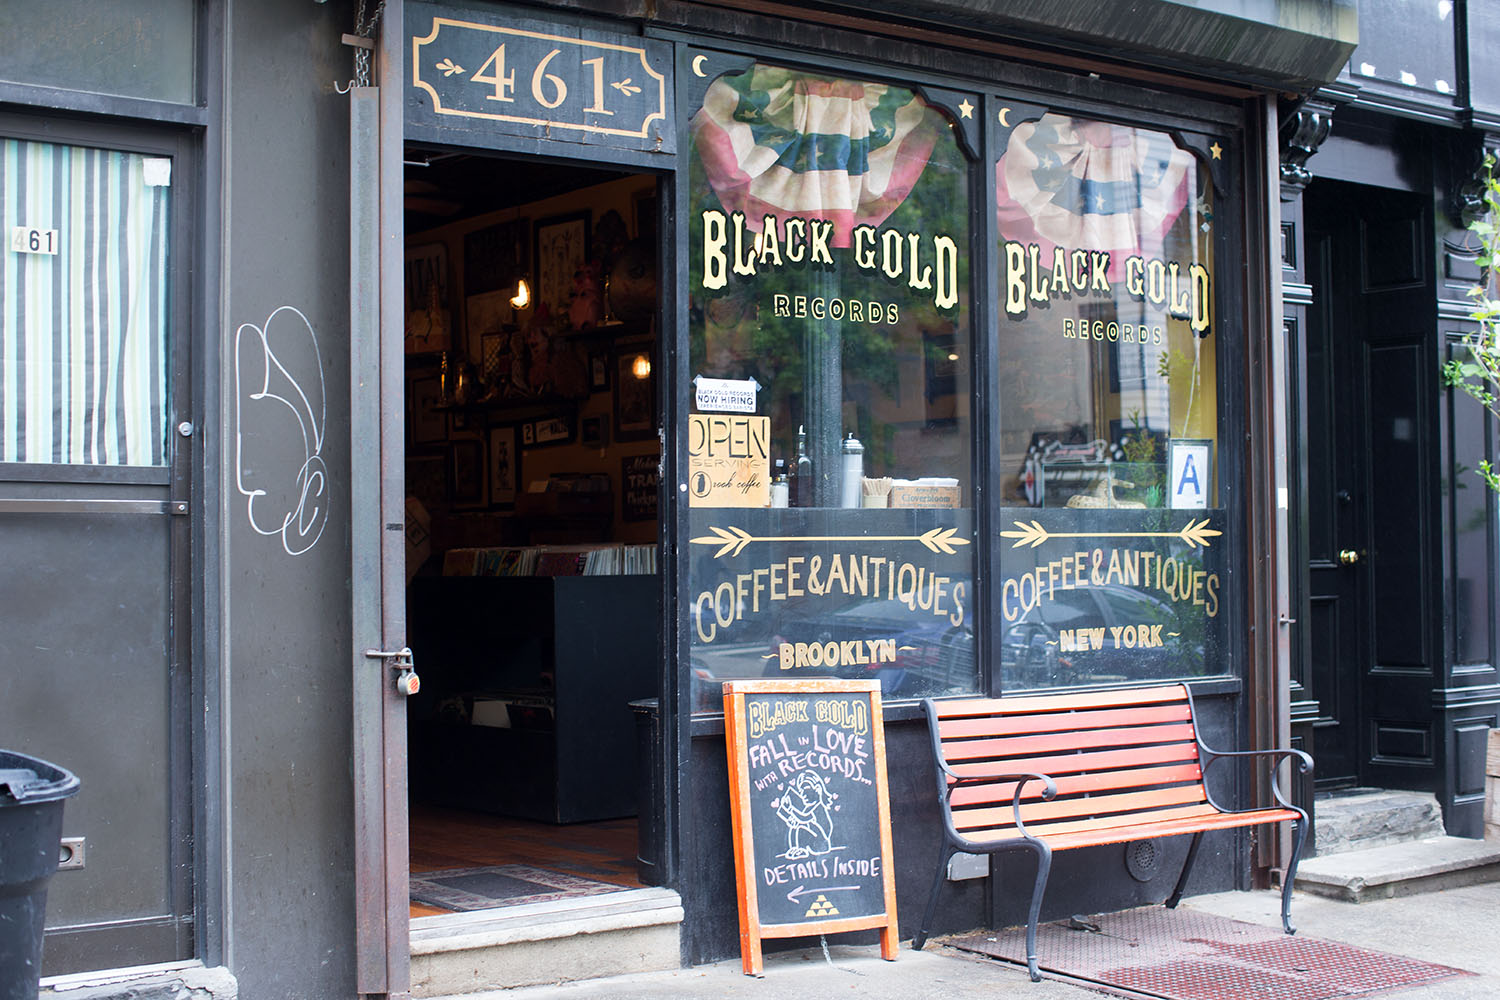 Black Gold Records  sells used records, antiques and coffee in Carrol Gardens.